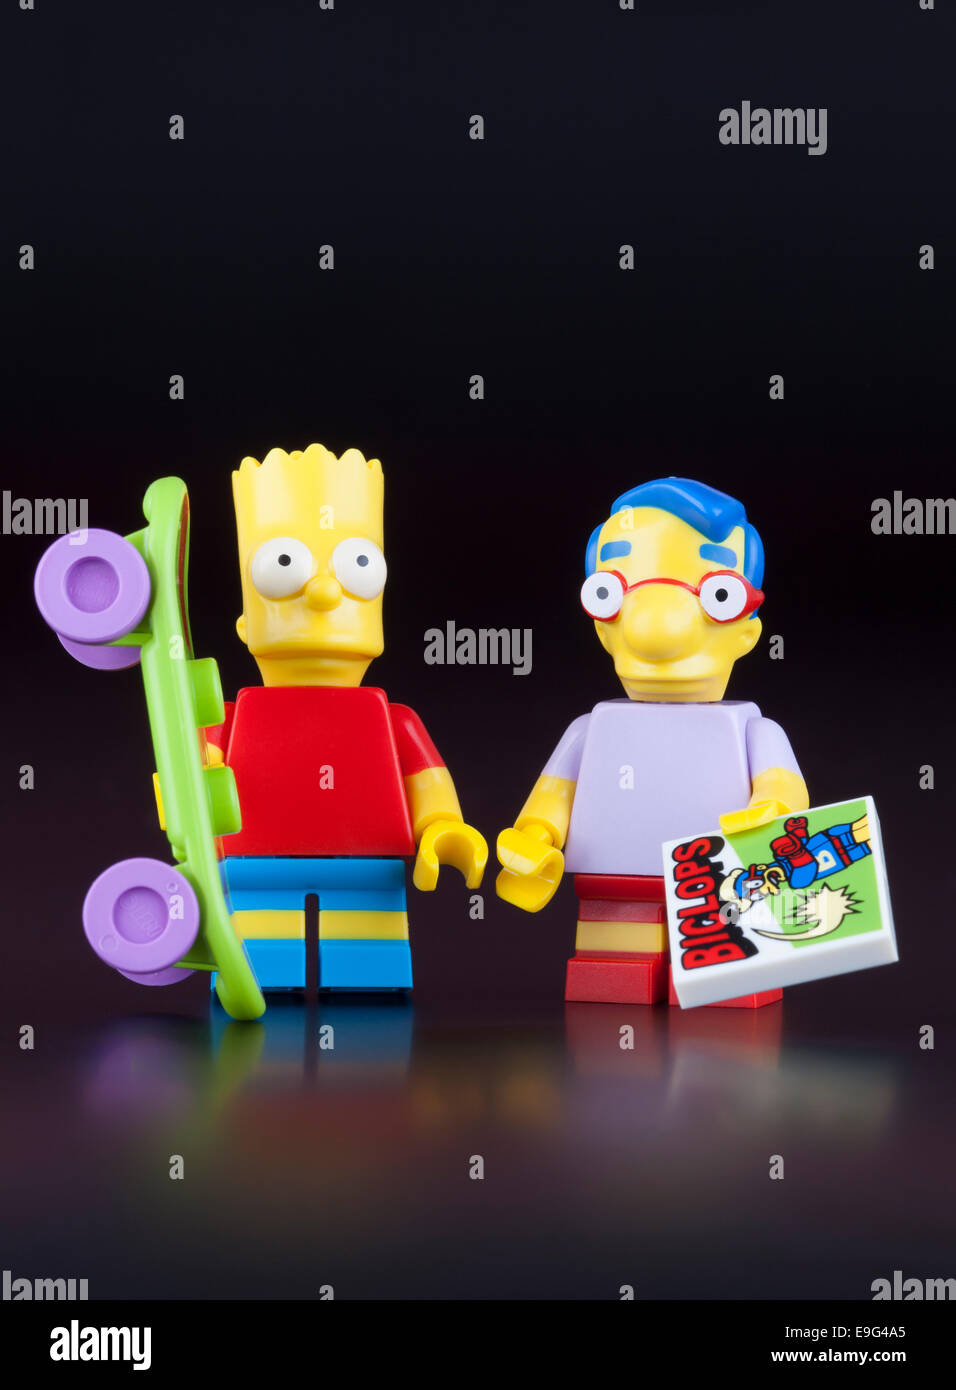 Tambov, Russian Federation - April 30, 2014 Lego Bart Simpson and his best friend Milhouse Mussolini Van Houten - Stock Image